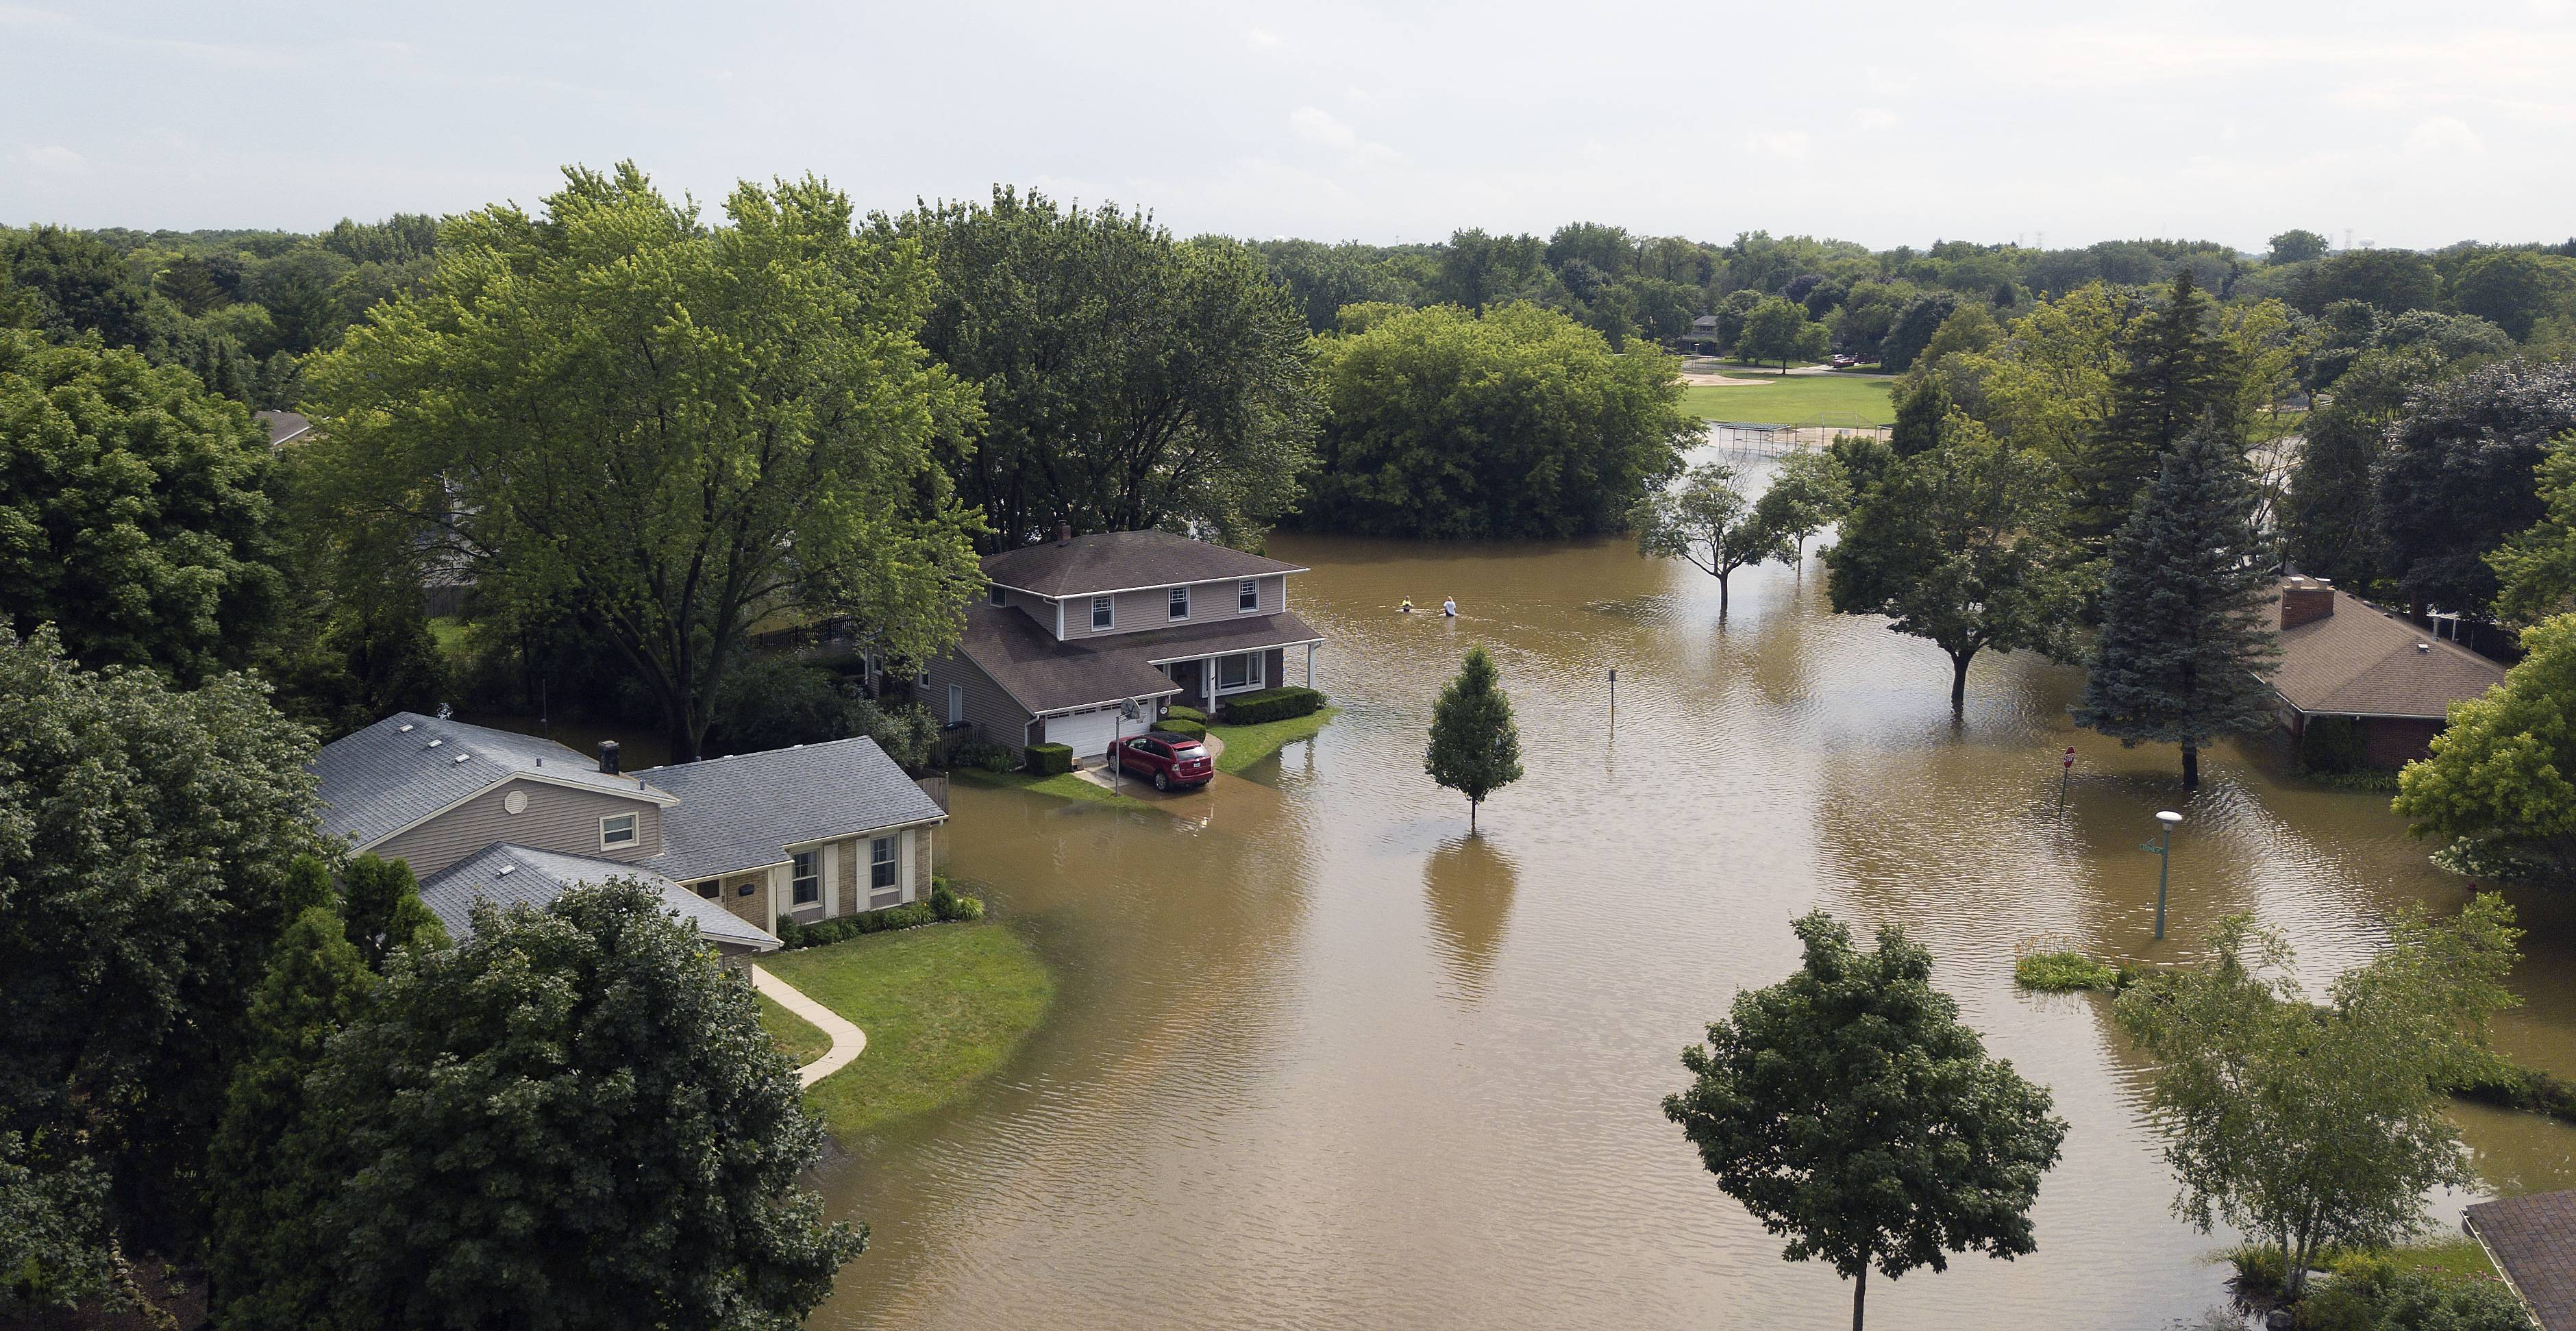 Heavy flooding at the intersection of Crane Boulevard and Dawes Road in Libertyville forced several residents out of their homes in July 2017. A pending master stormwater management plan outlines flood control projects in this and other areas of the village.